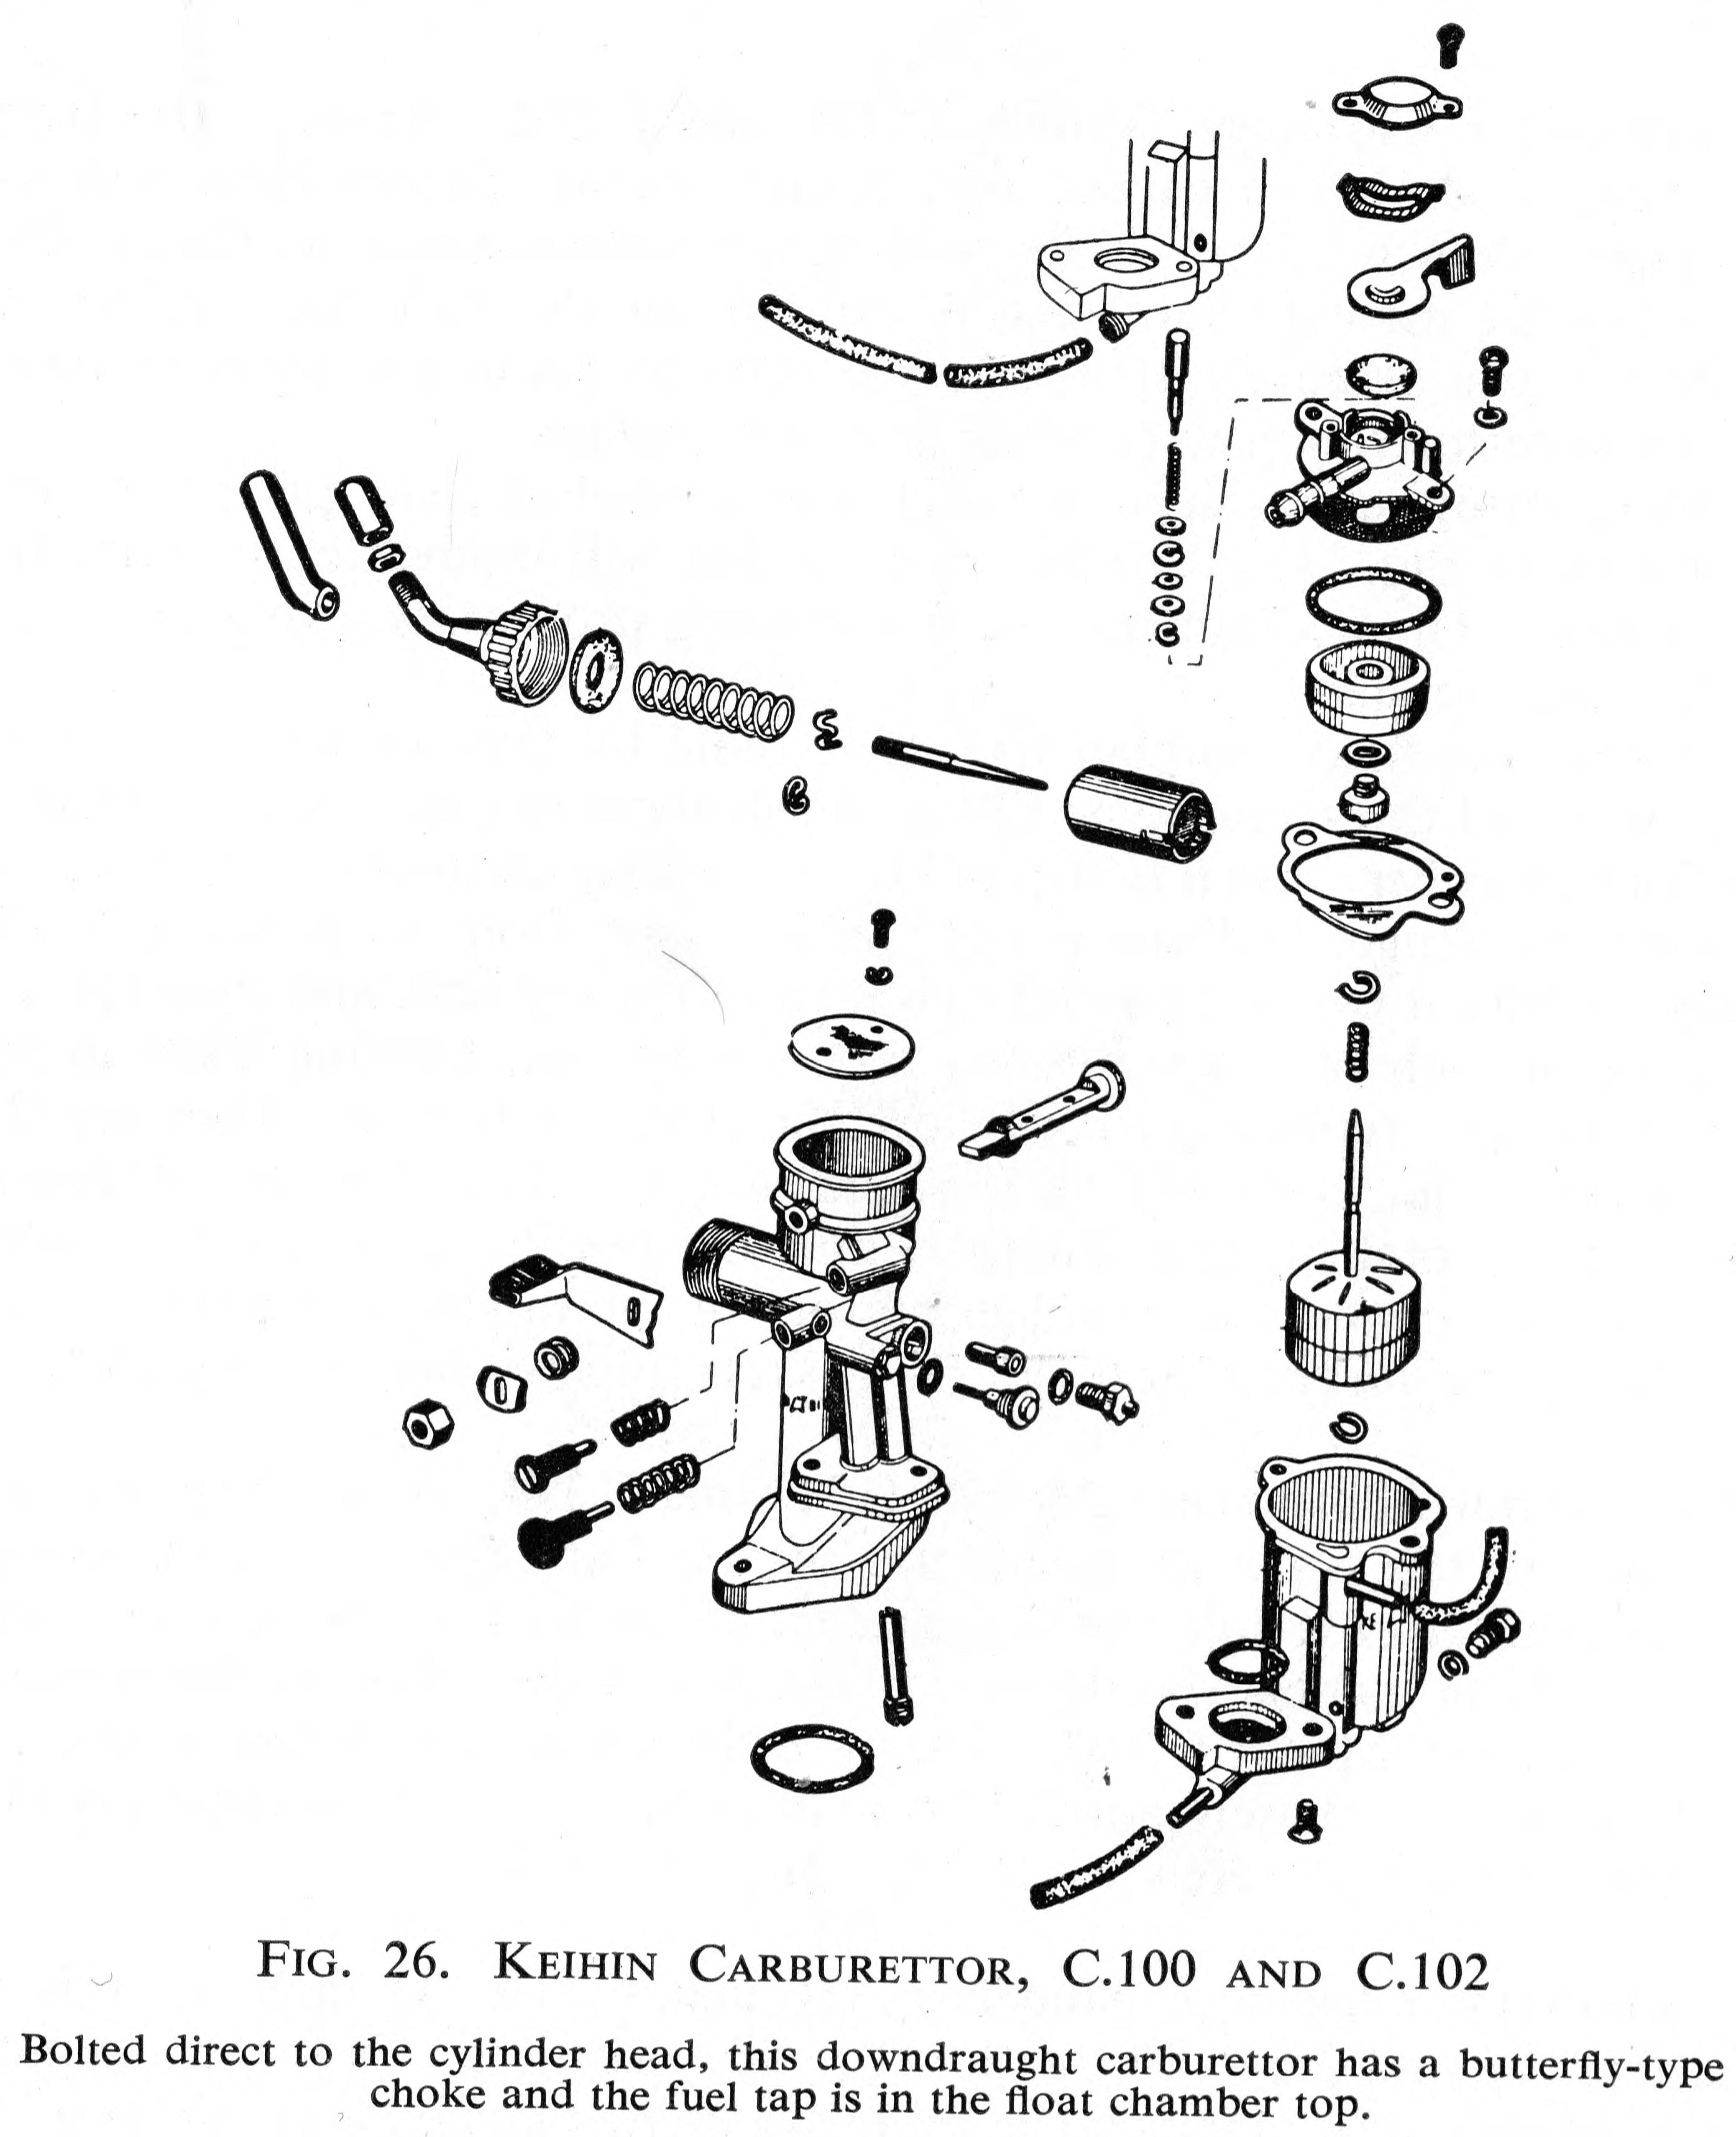 Keihin Carburetor For Honda C100 All The Data Super Cub Wiring Diagram Boh Carburettor